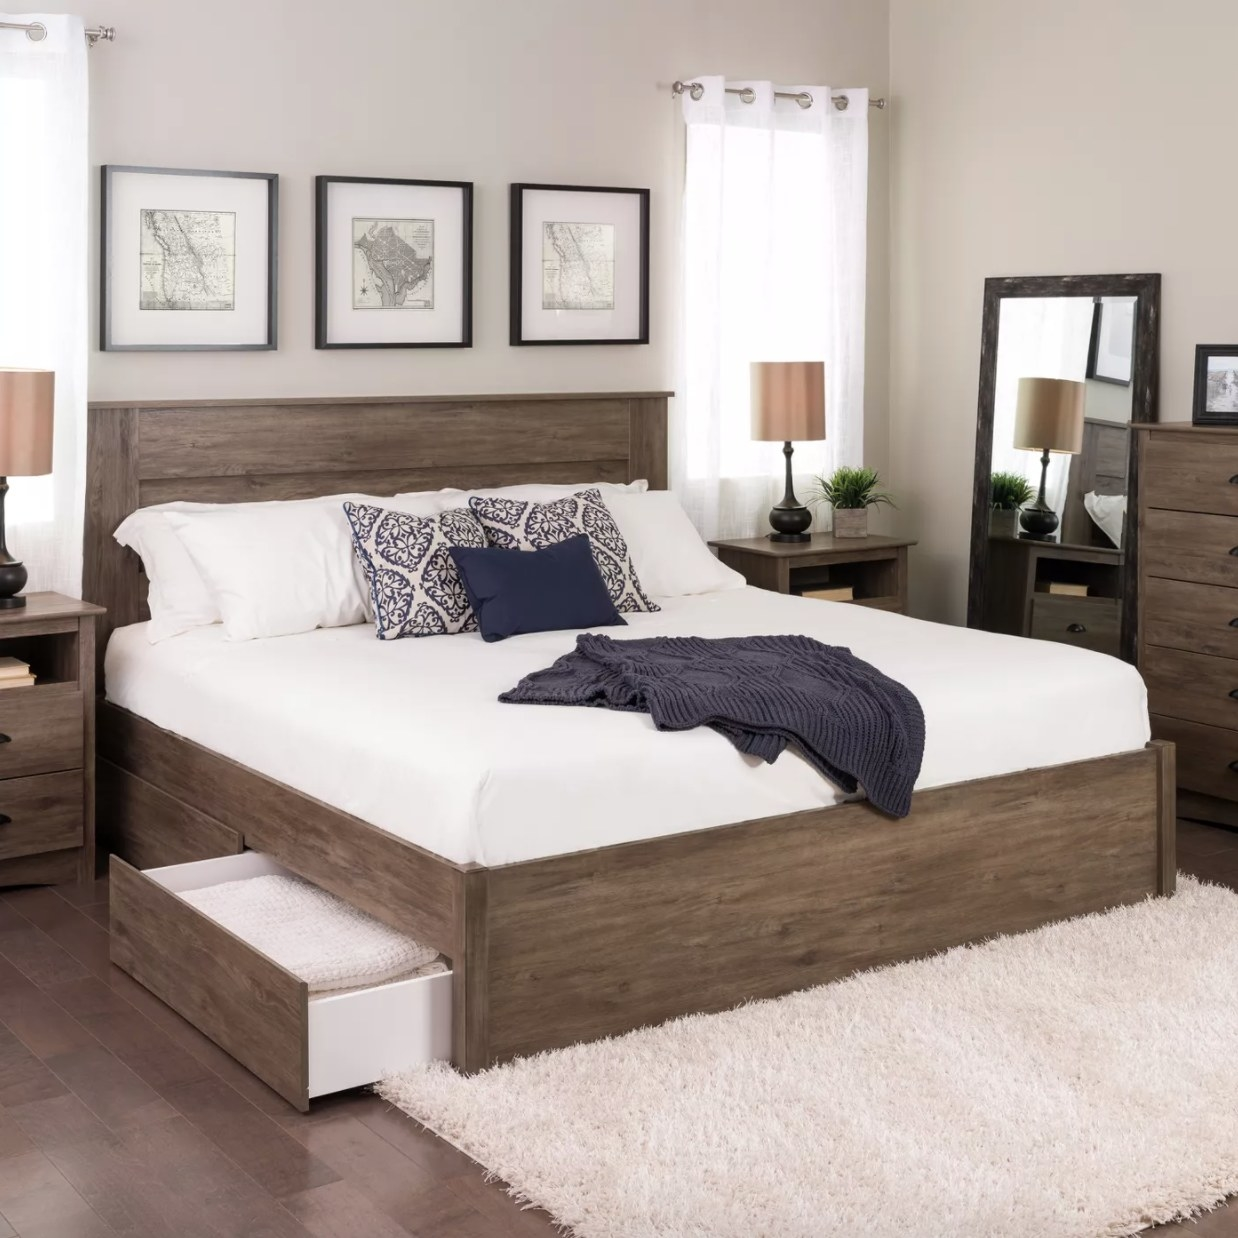 A wooden bed frame with two drawers